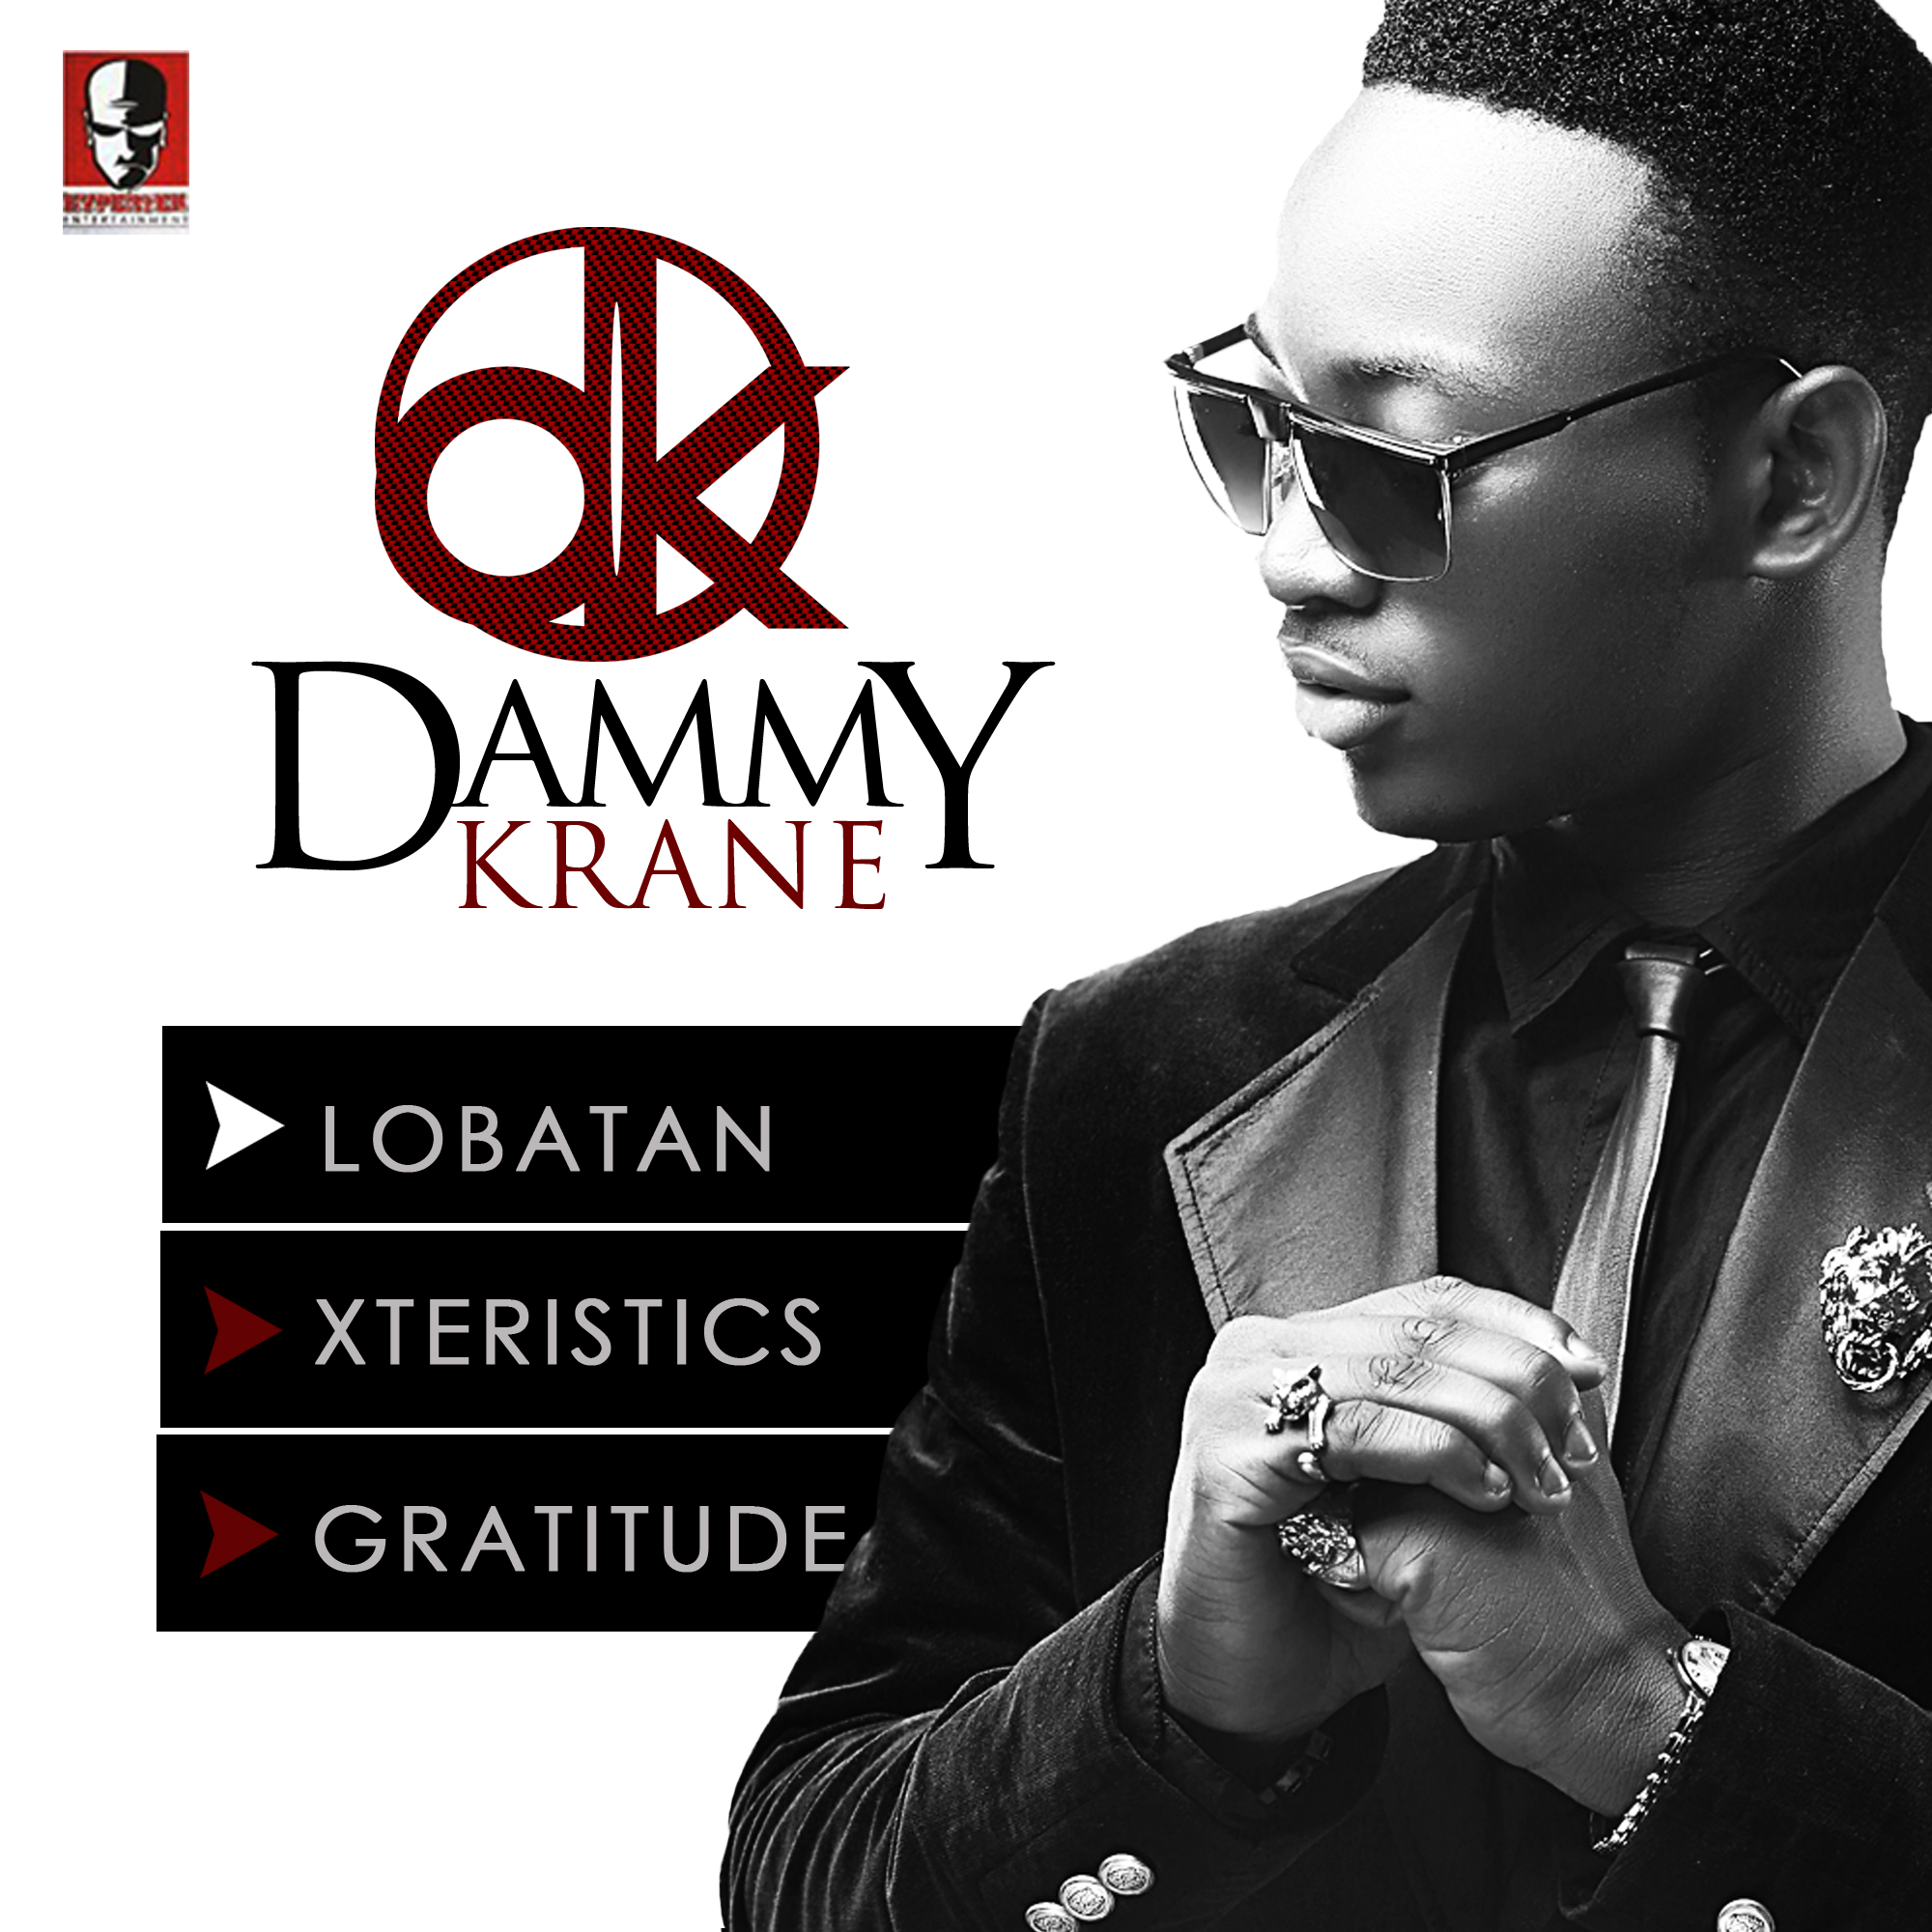 Dammy krane and chidinma dating service. what does god say about interracial dating.